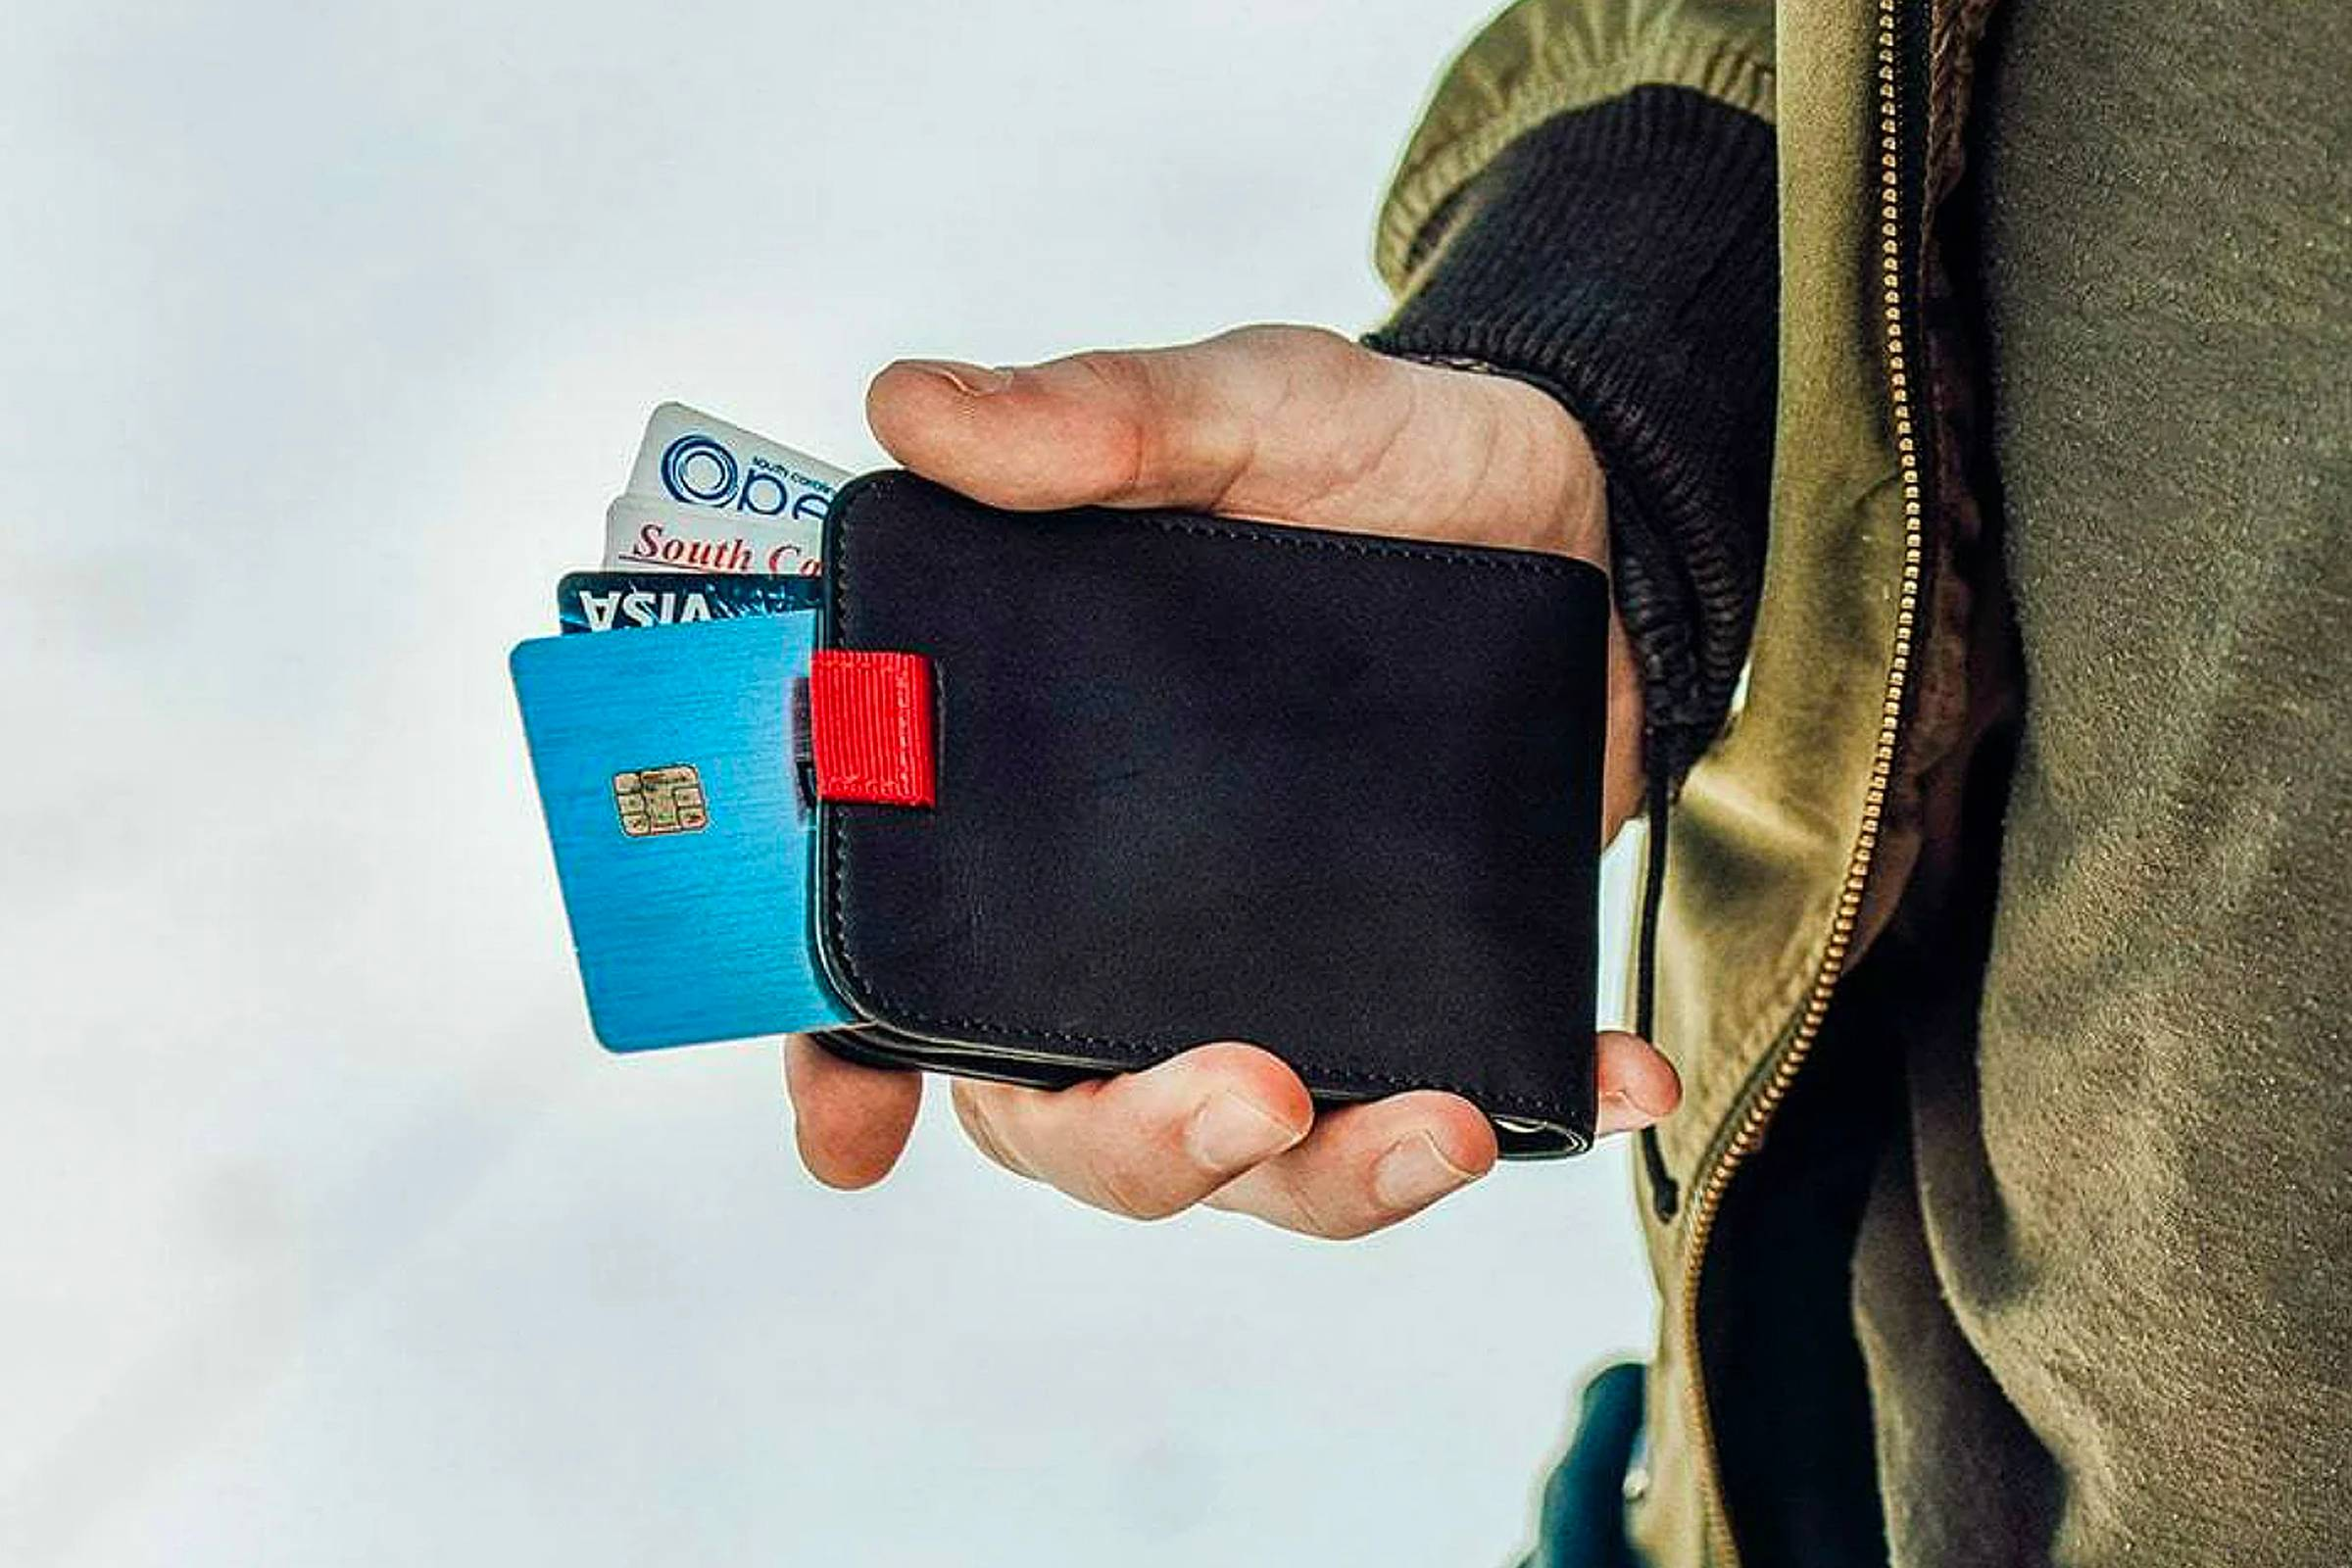 Bifold Wallets and Cardholders